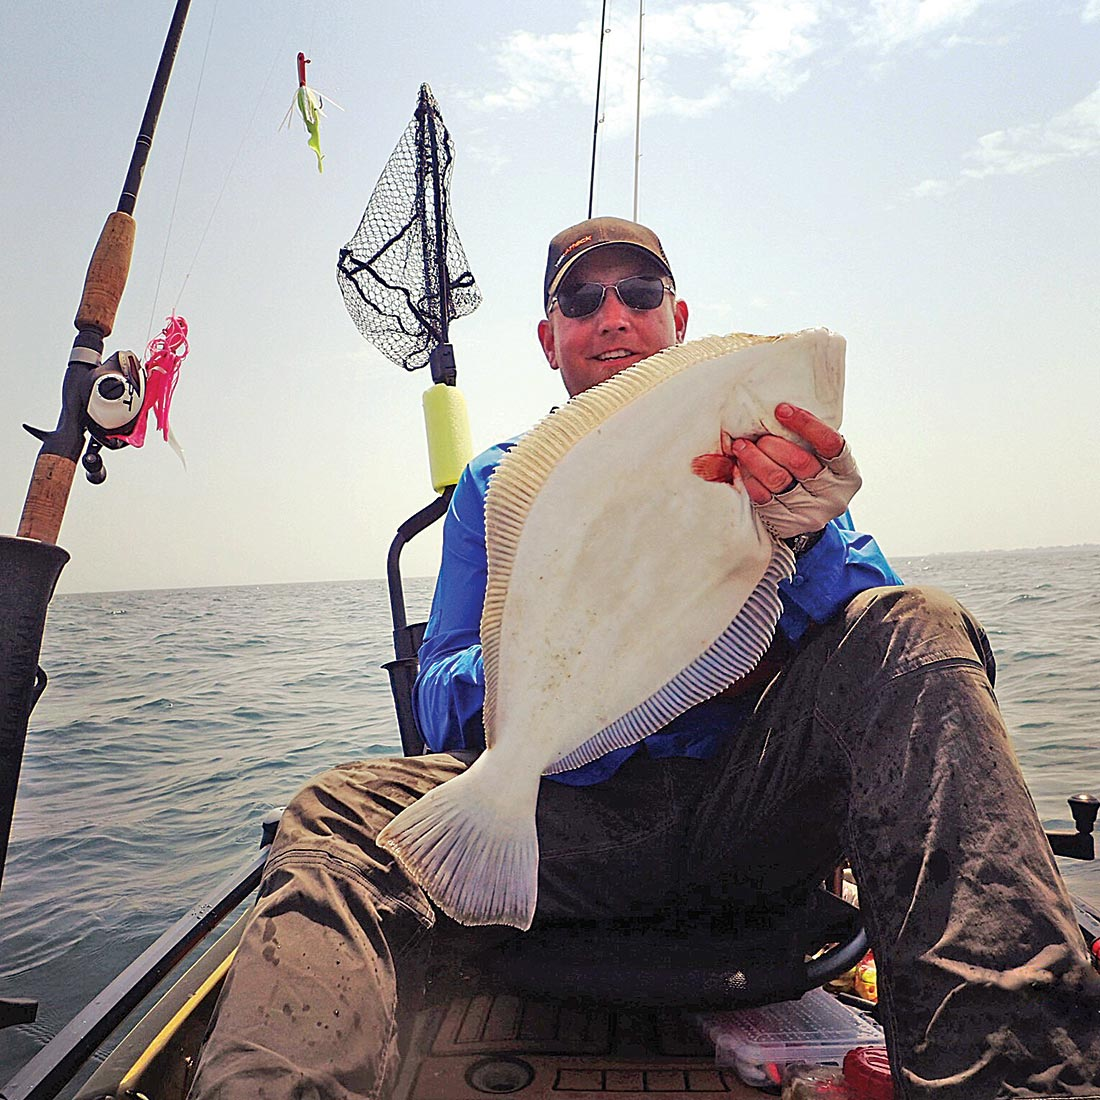 Chris Wahl tips both the main jig and teaser